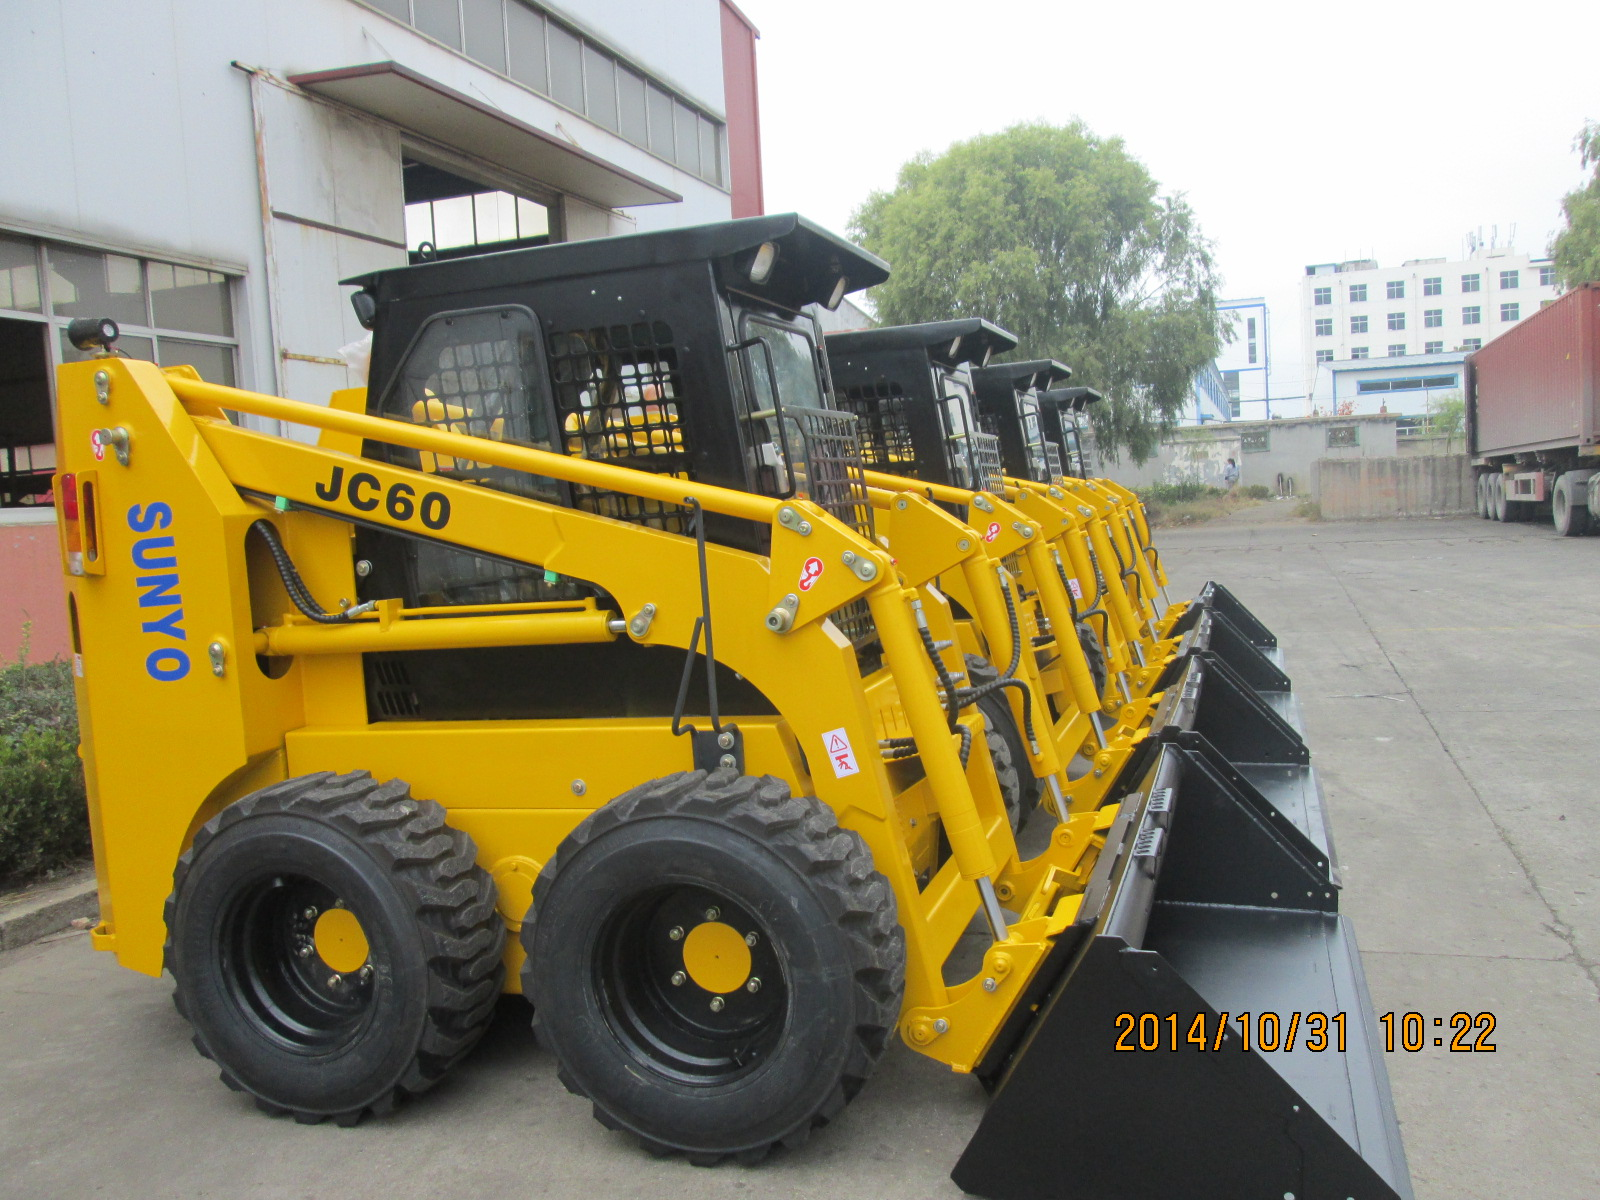 Chinese Skid Loader Side Loaders Manufacturer Factory